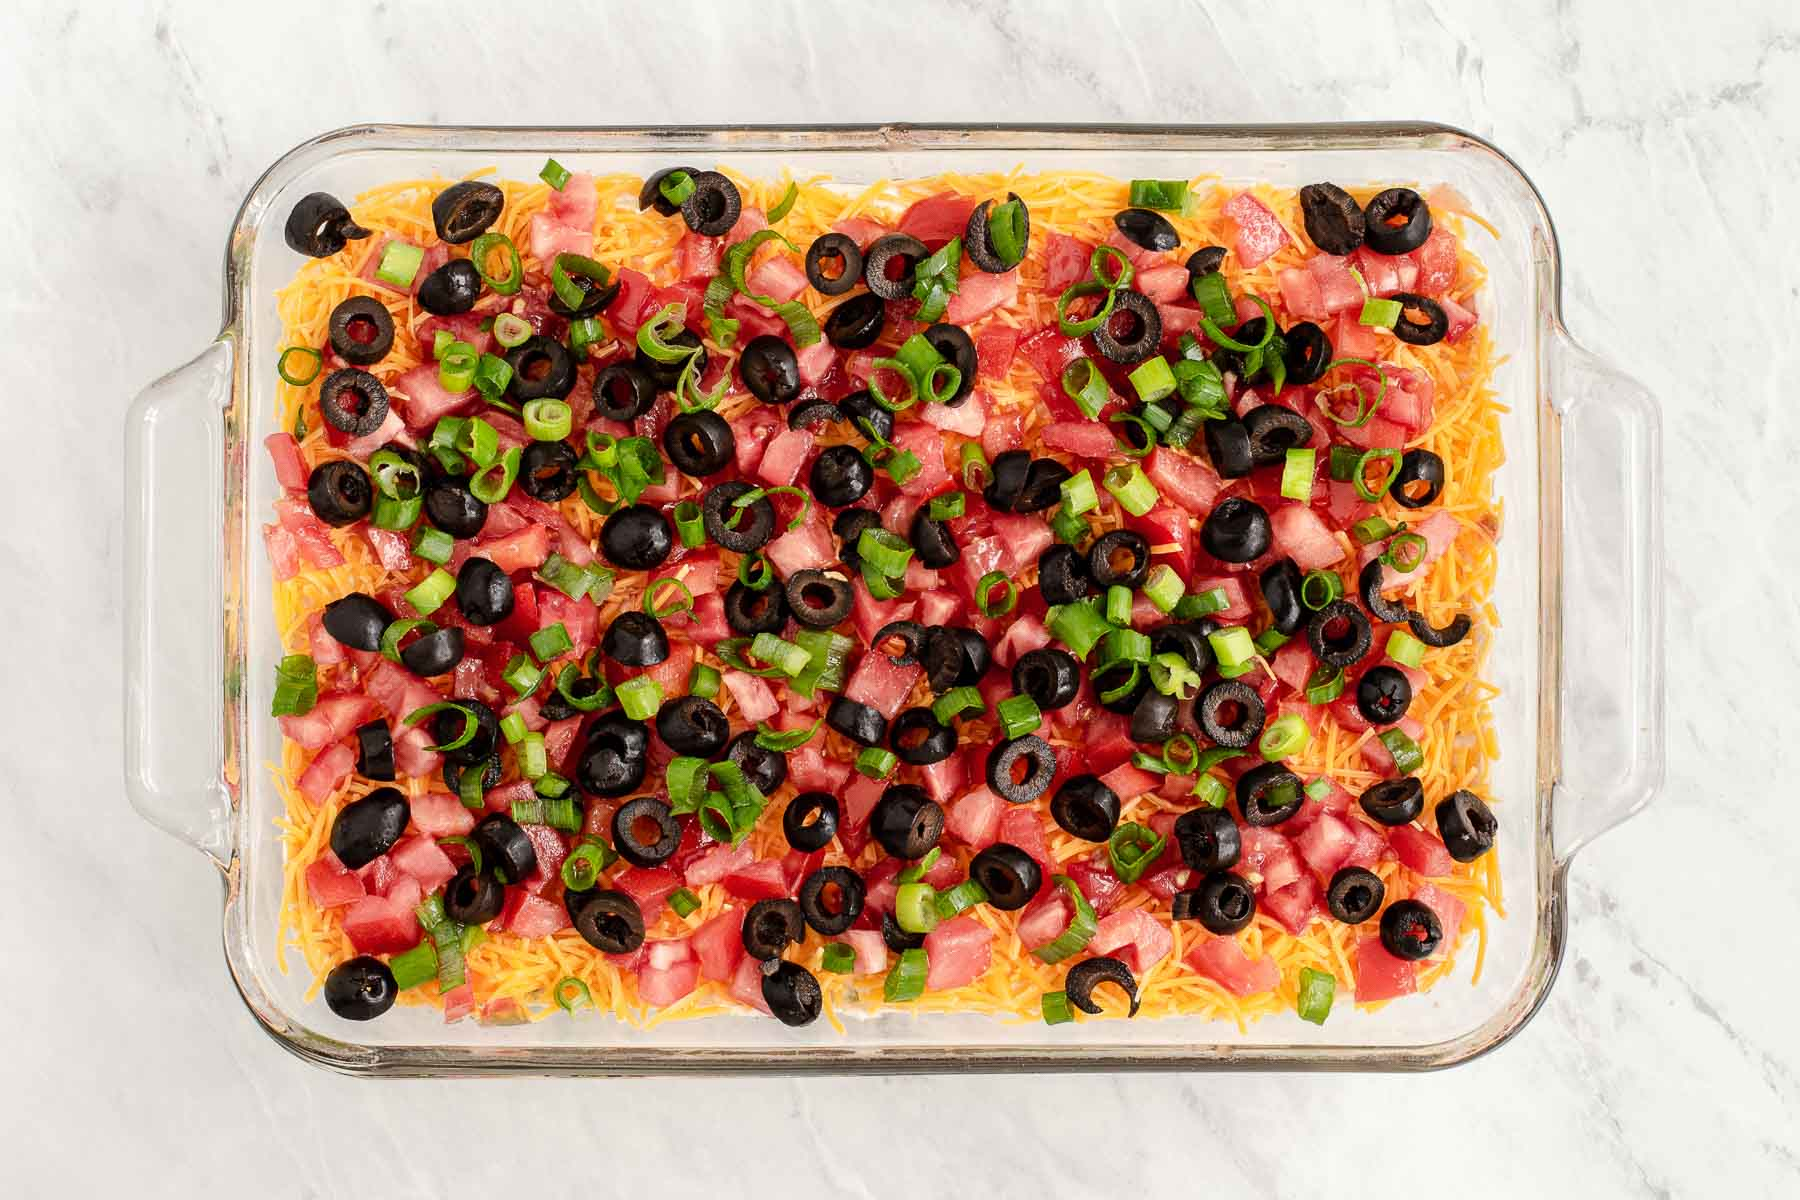 Seven layer dip in a 9 by 13 inch dish.